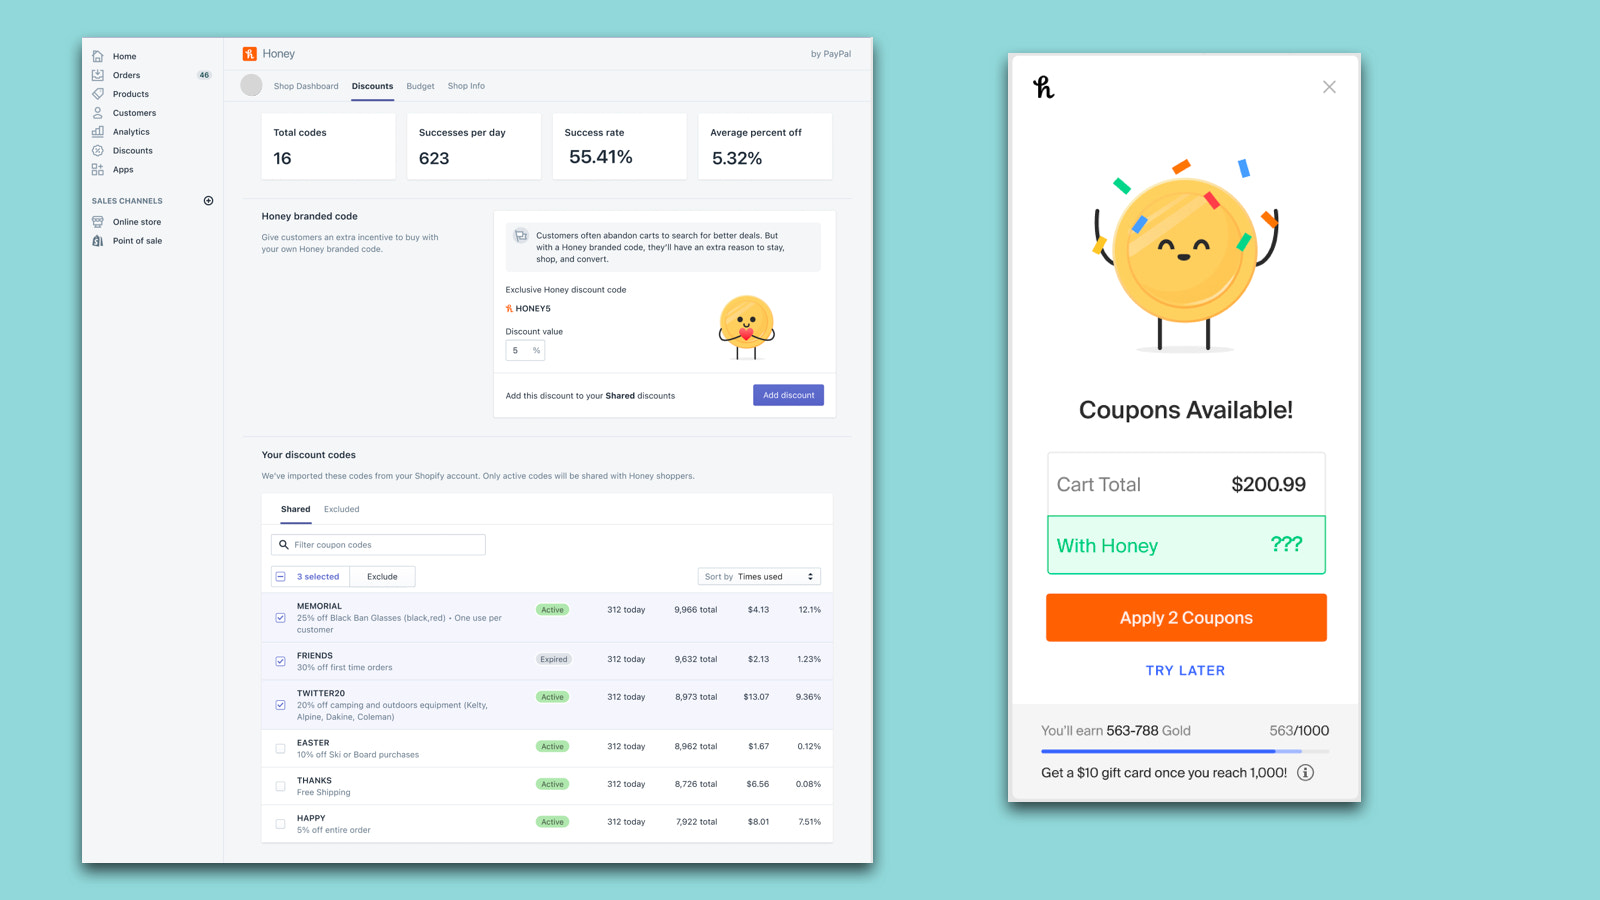 Manage discount codes that appear in the Honey Extension.